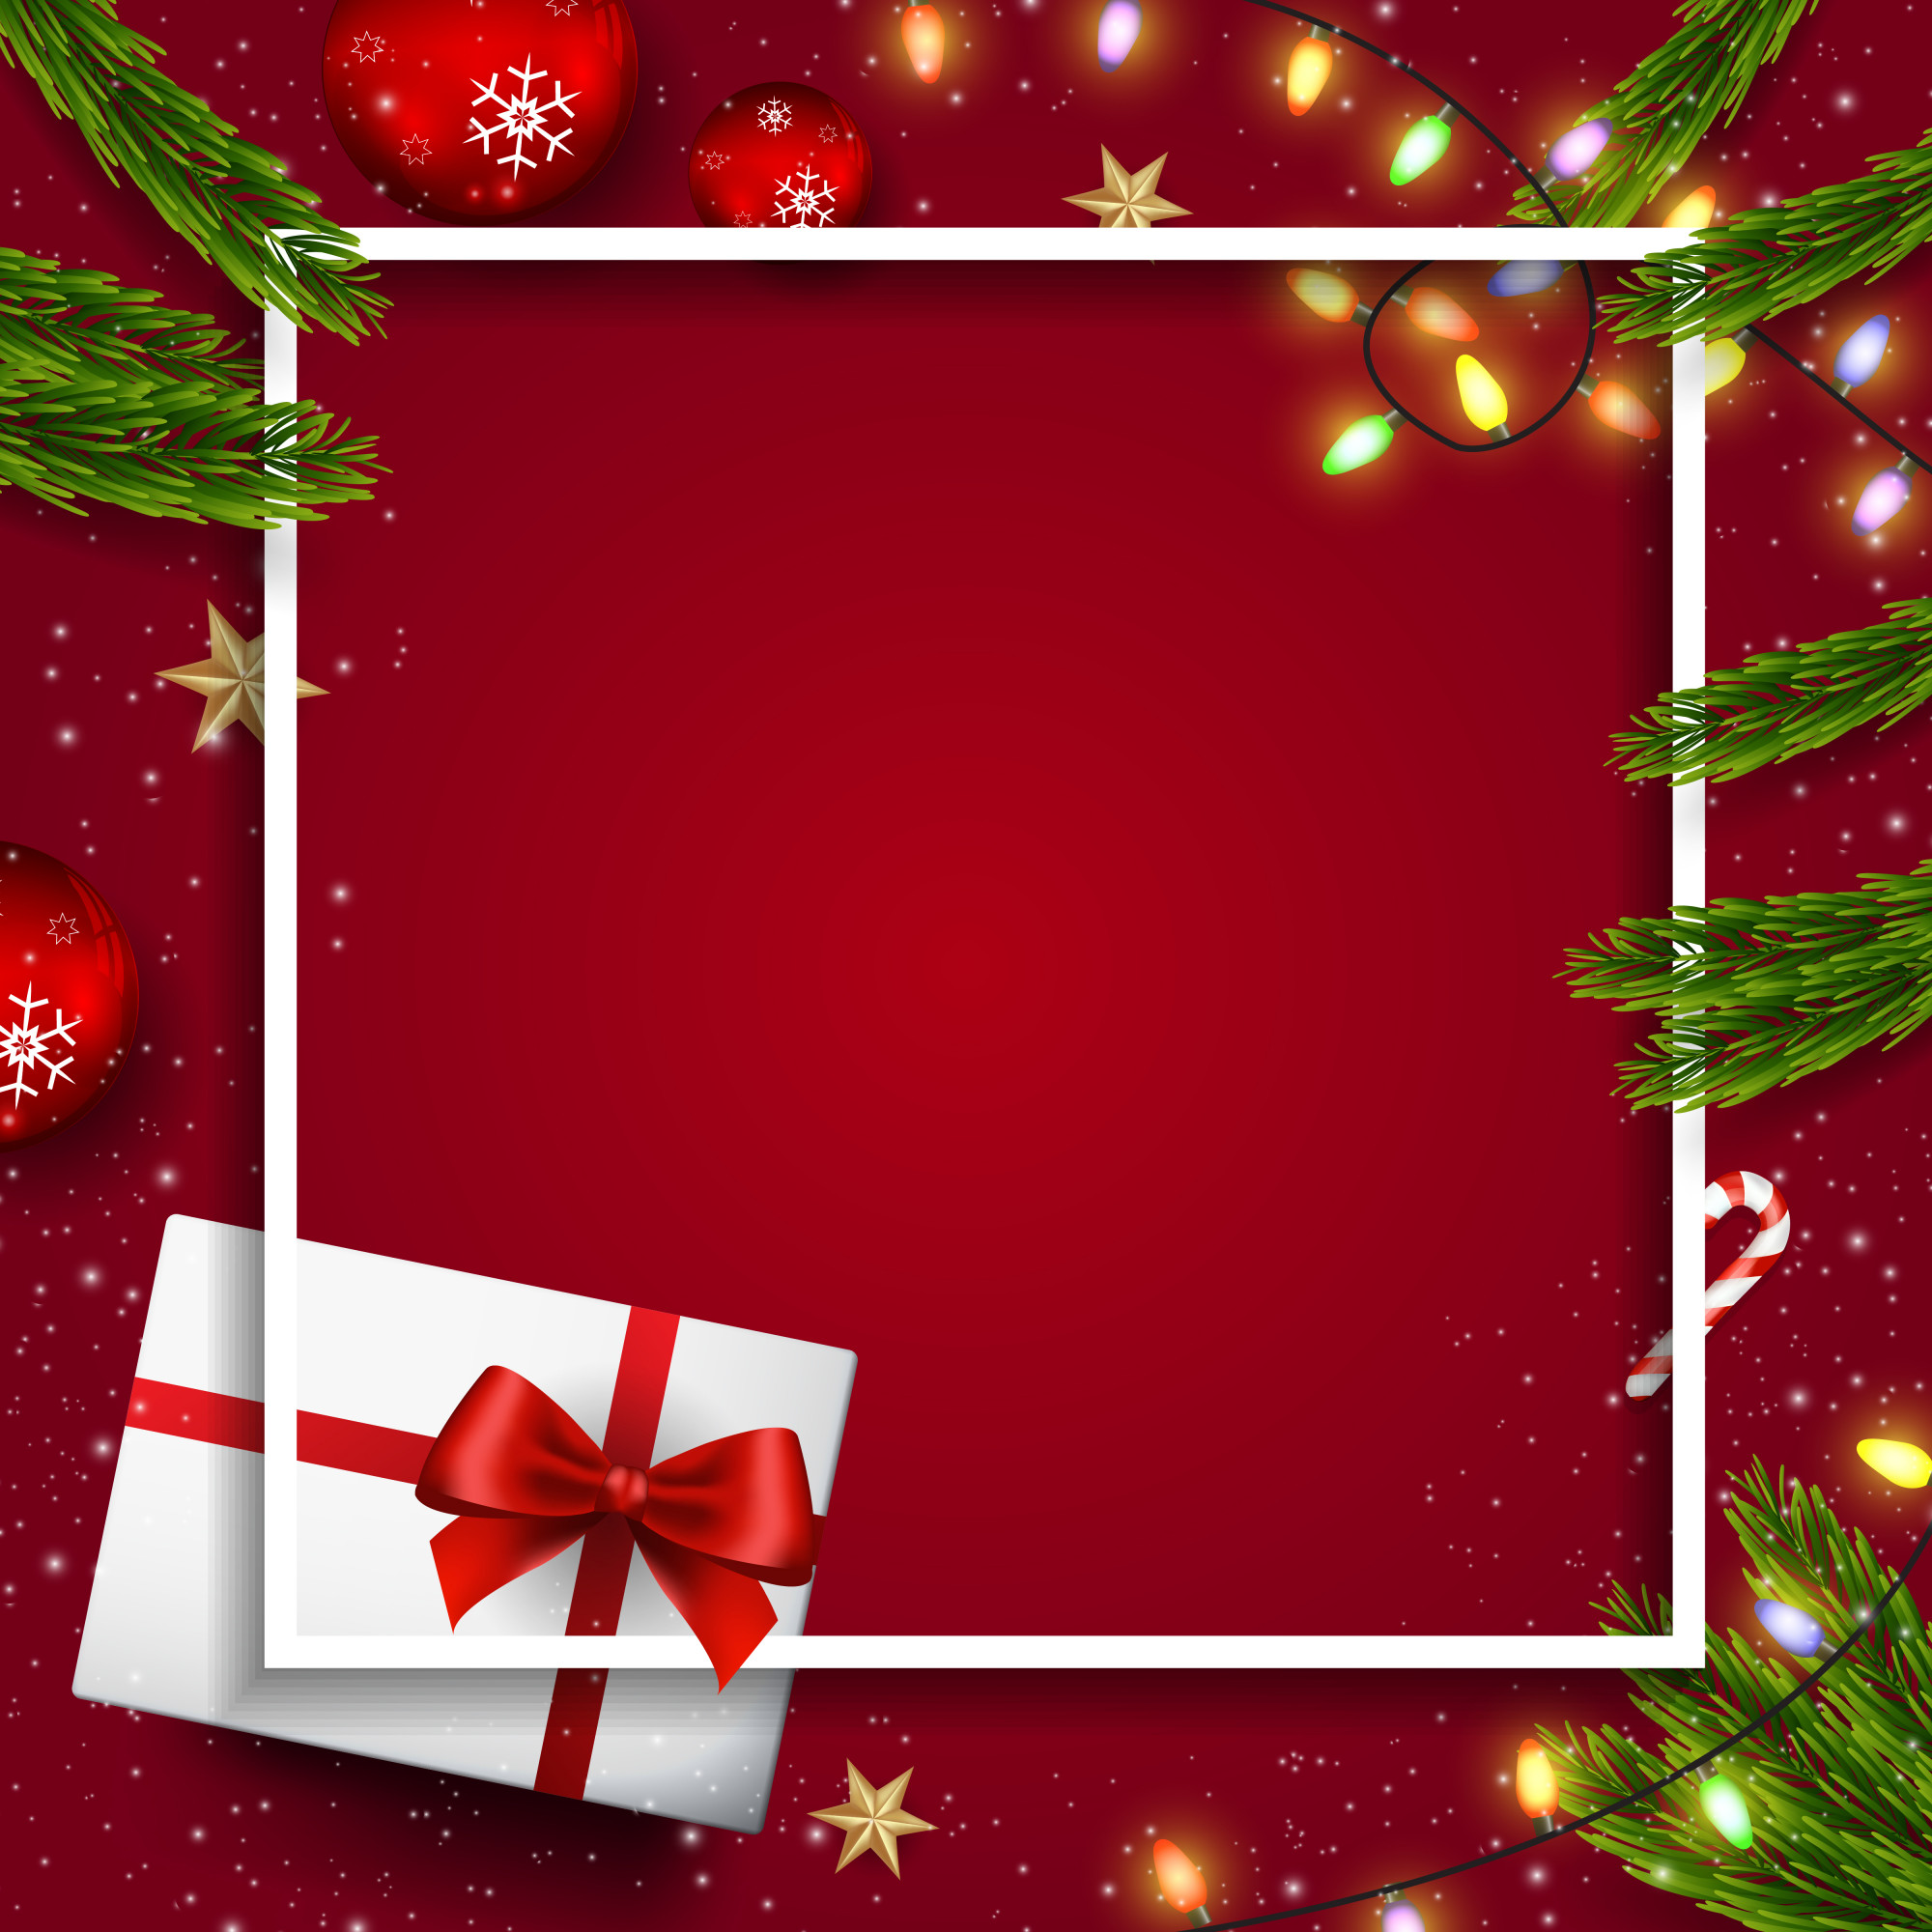 Christmas vector design background.